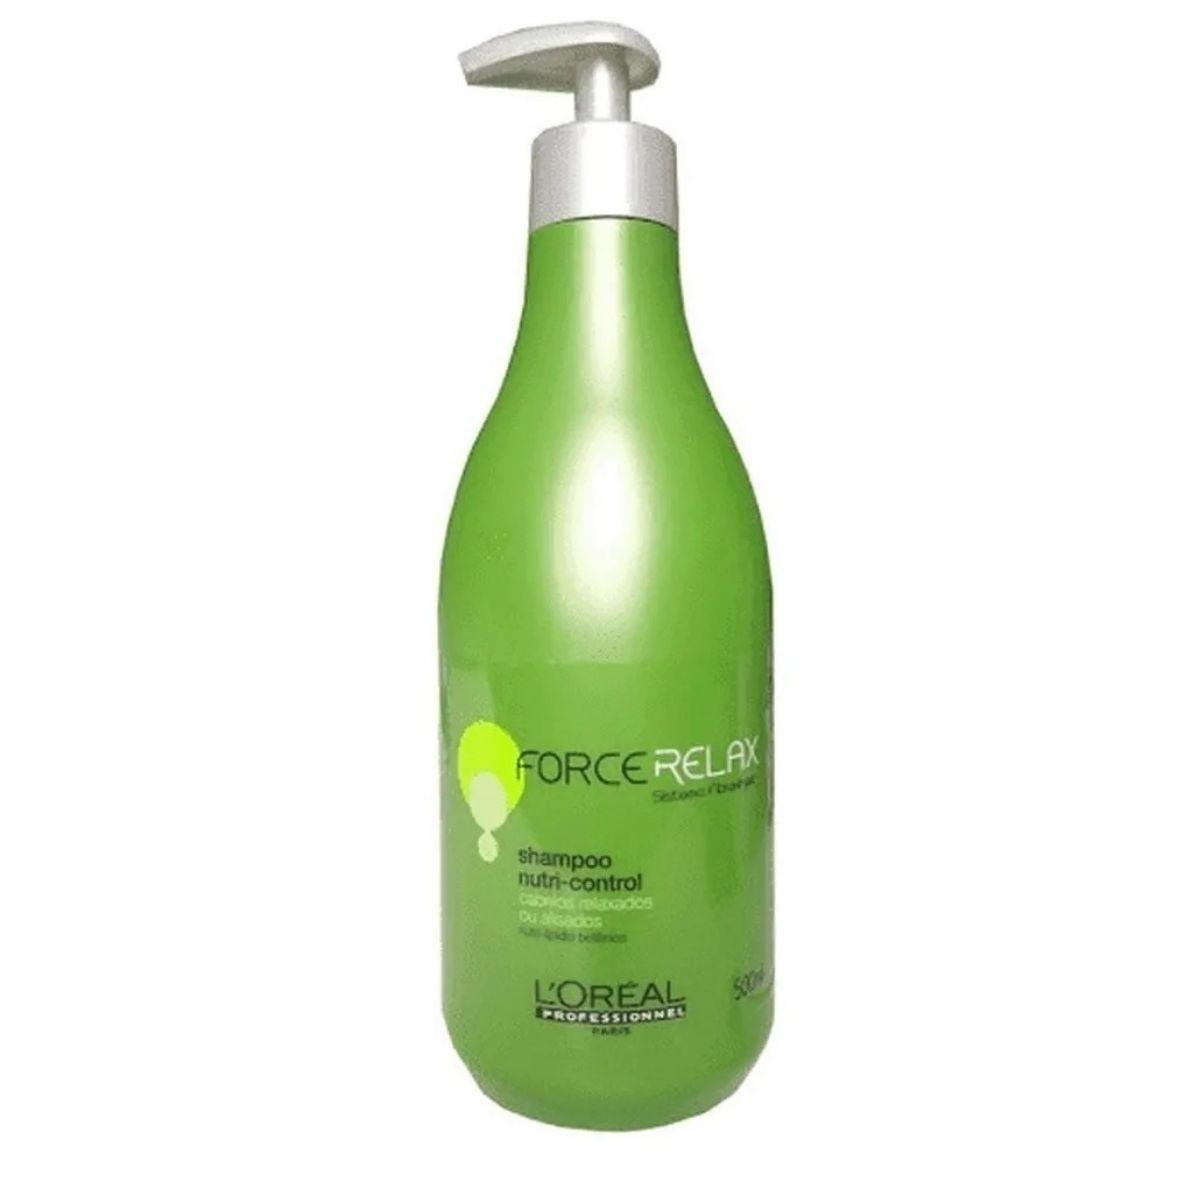 L'Oréal Professionnel Expert Force Relax NutriControl - Shampoo 500ml